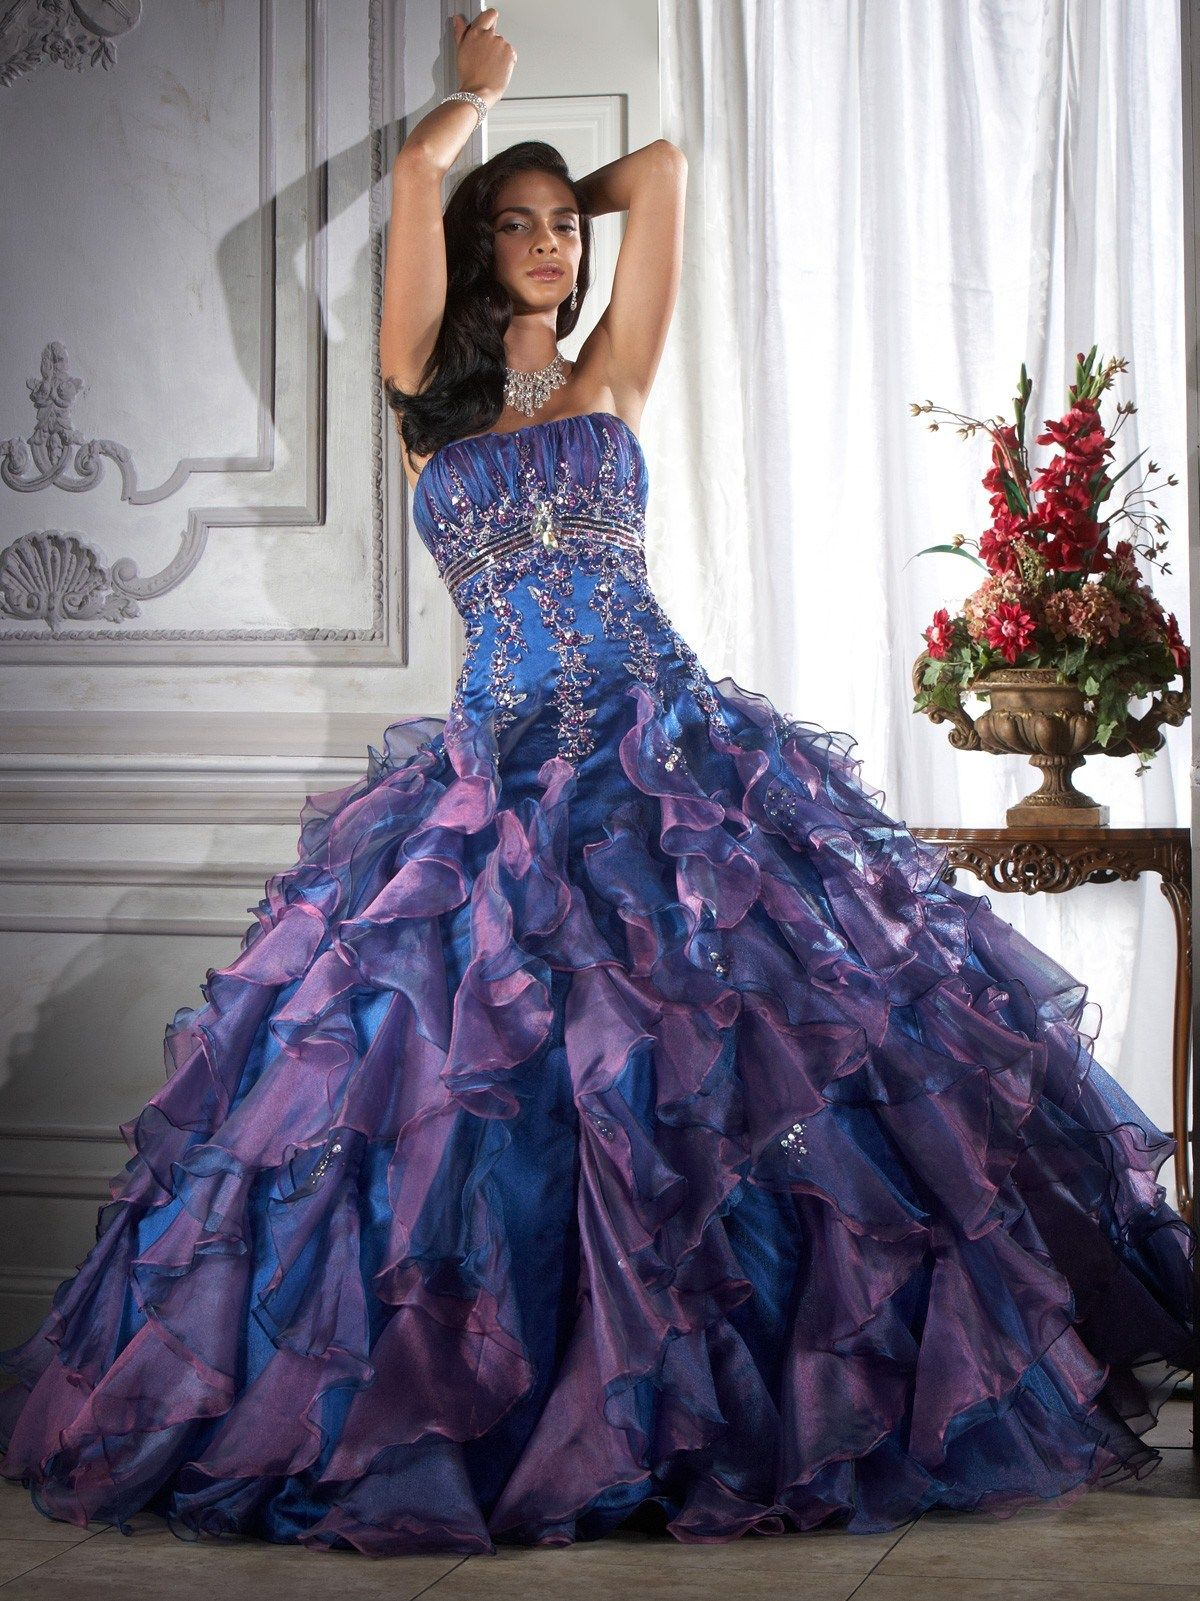 10+ ideas for purple wedding dress styling Turquoise